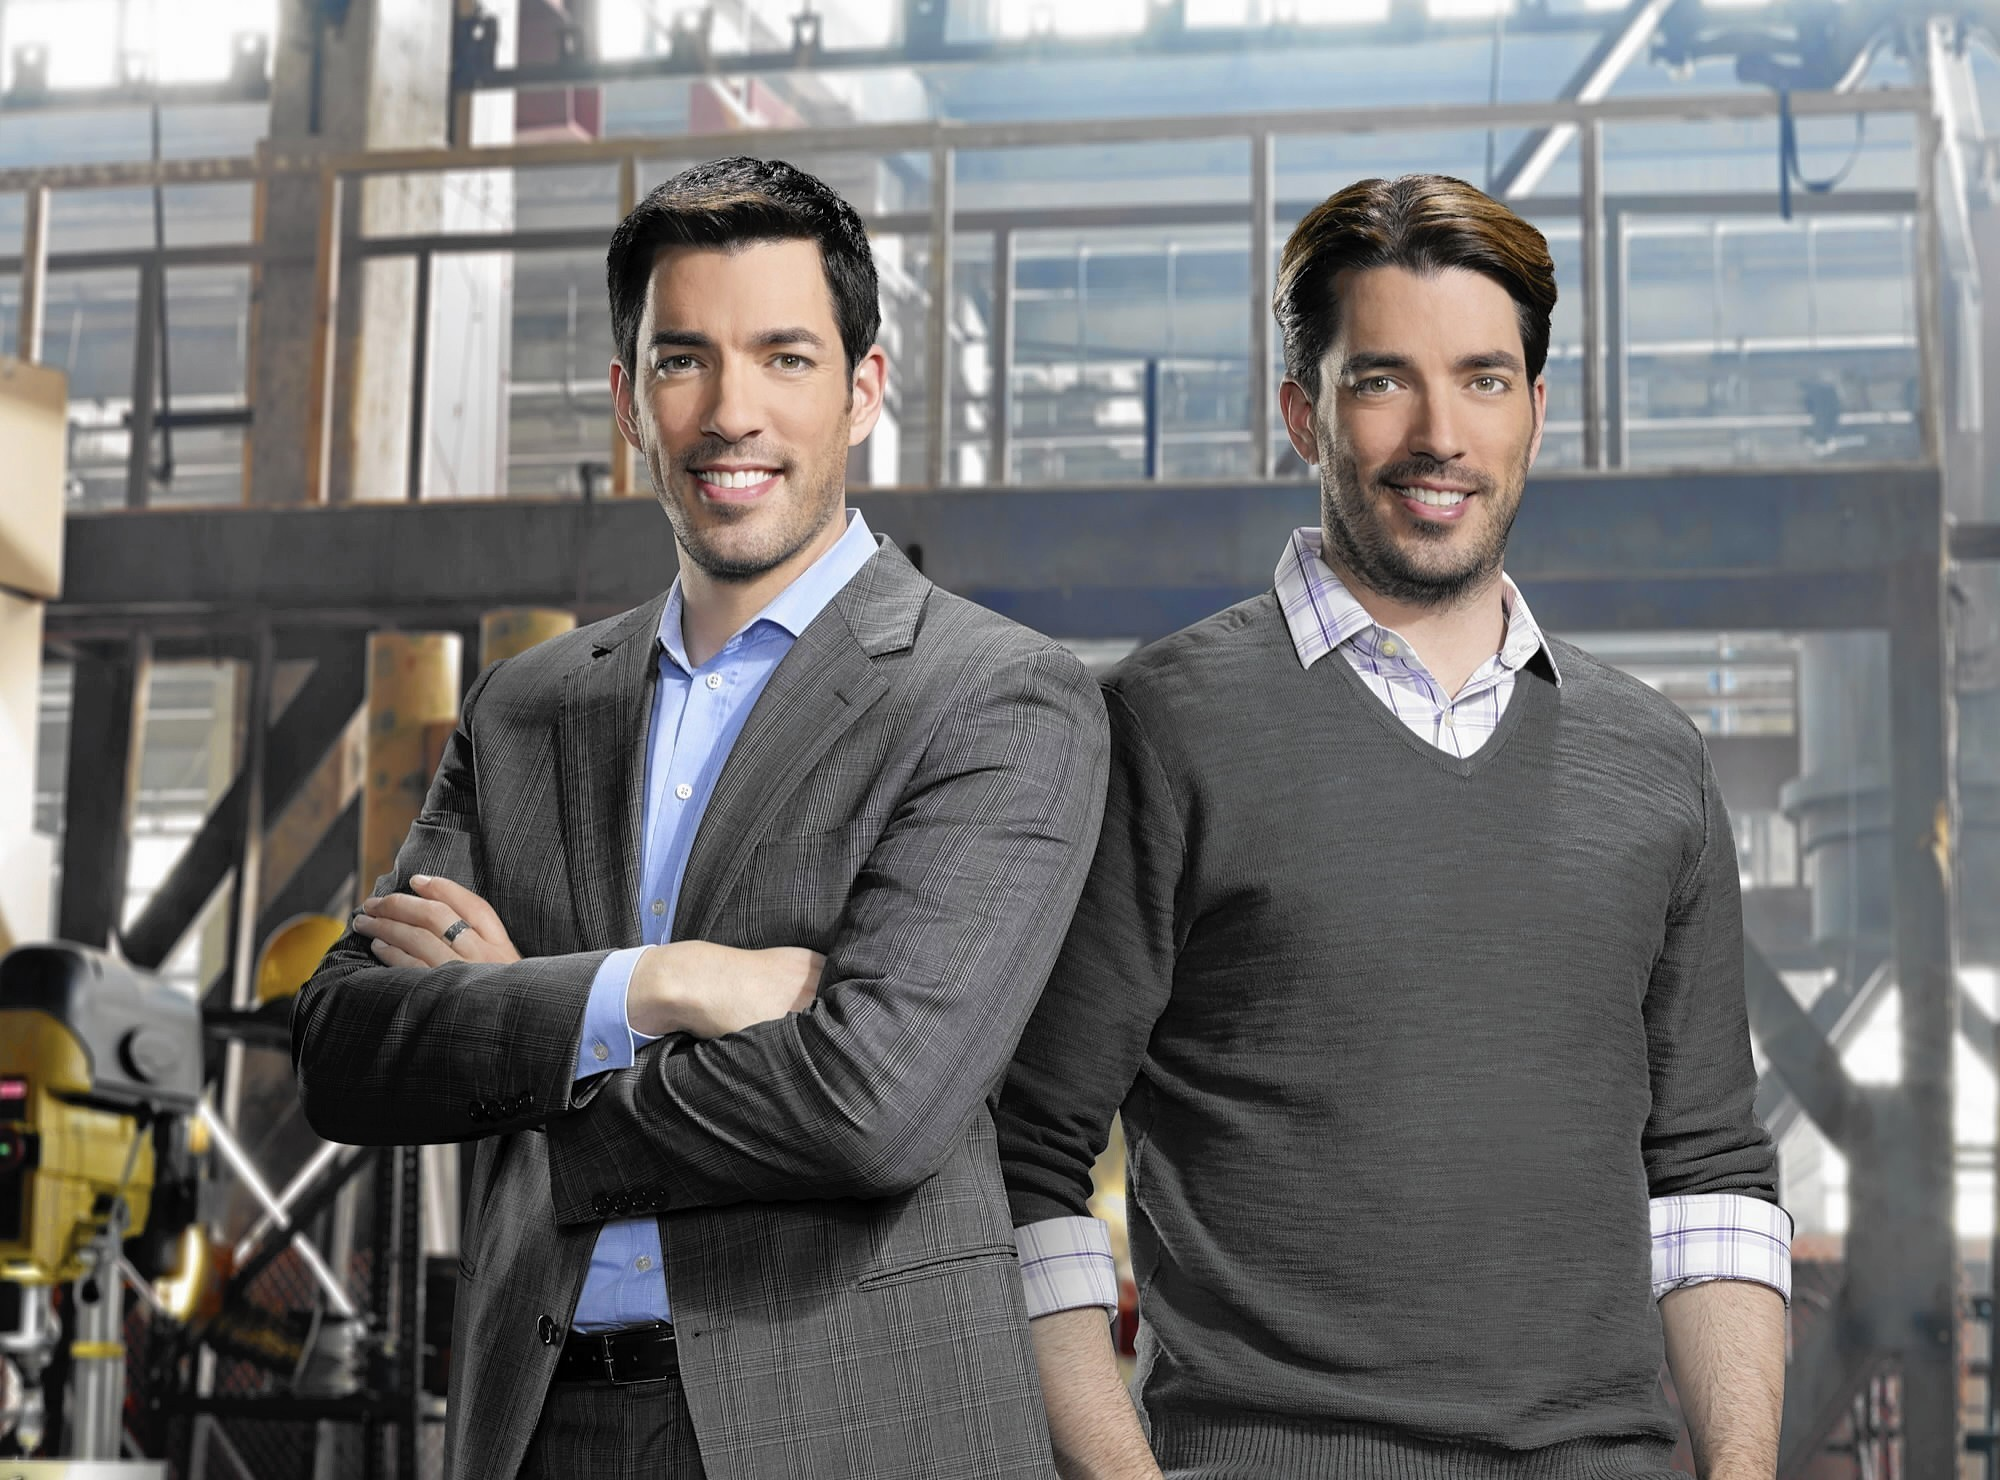 Drew scott of hgtv 39 s 39 property brothers 39 is an outlet Who are the property brothers